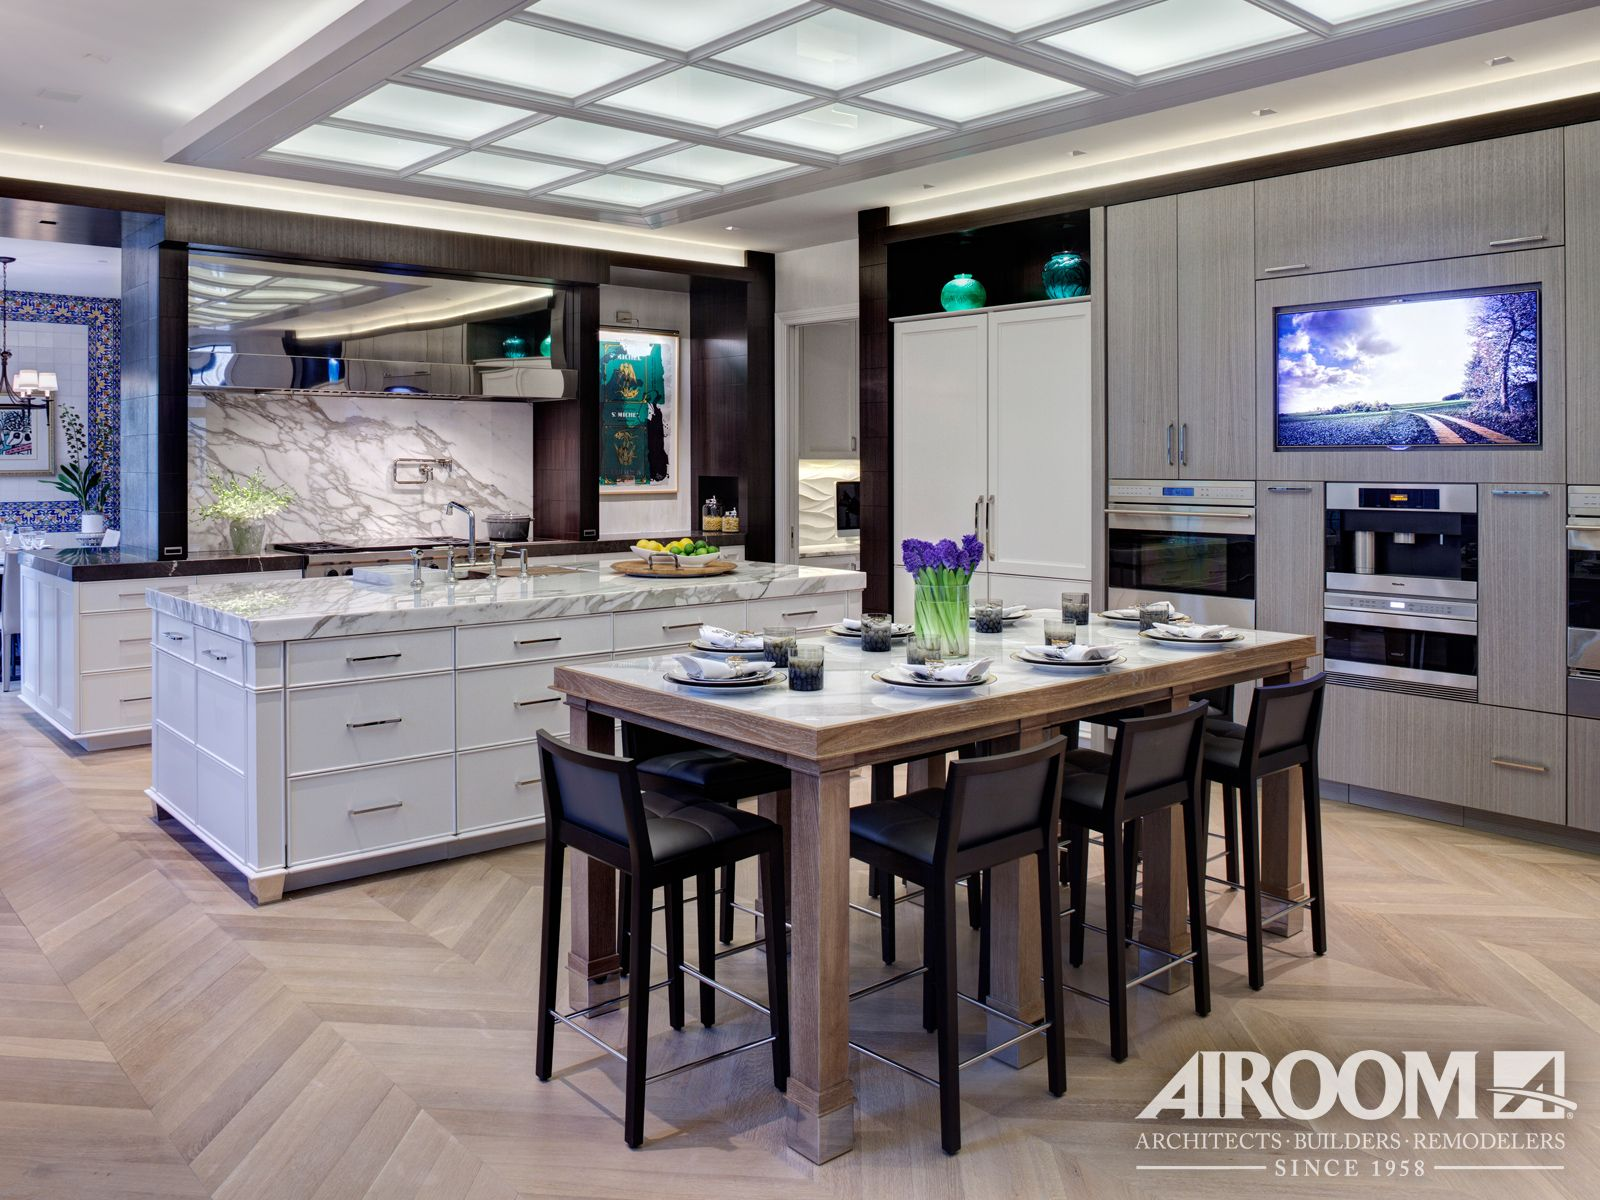 This Winnetka kitchen remodel features a modern